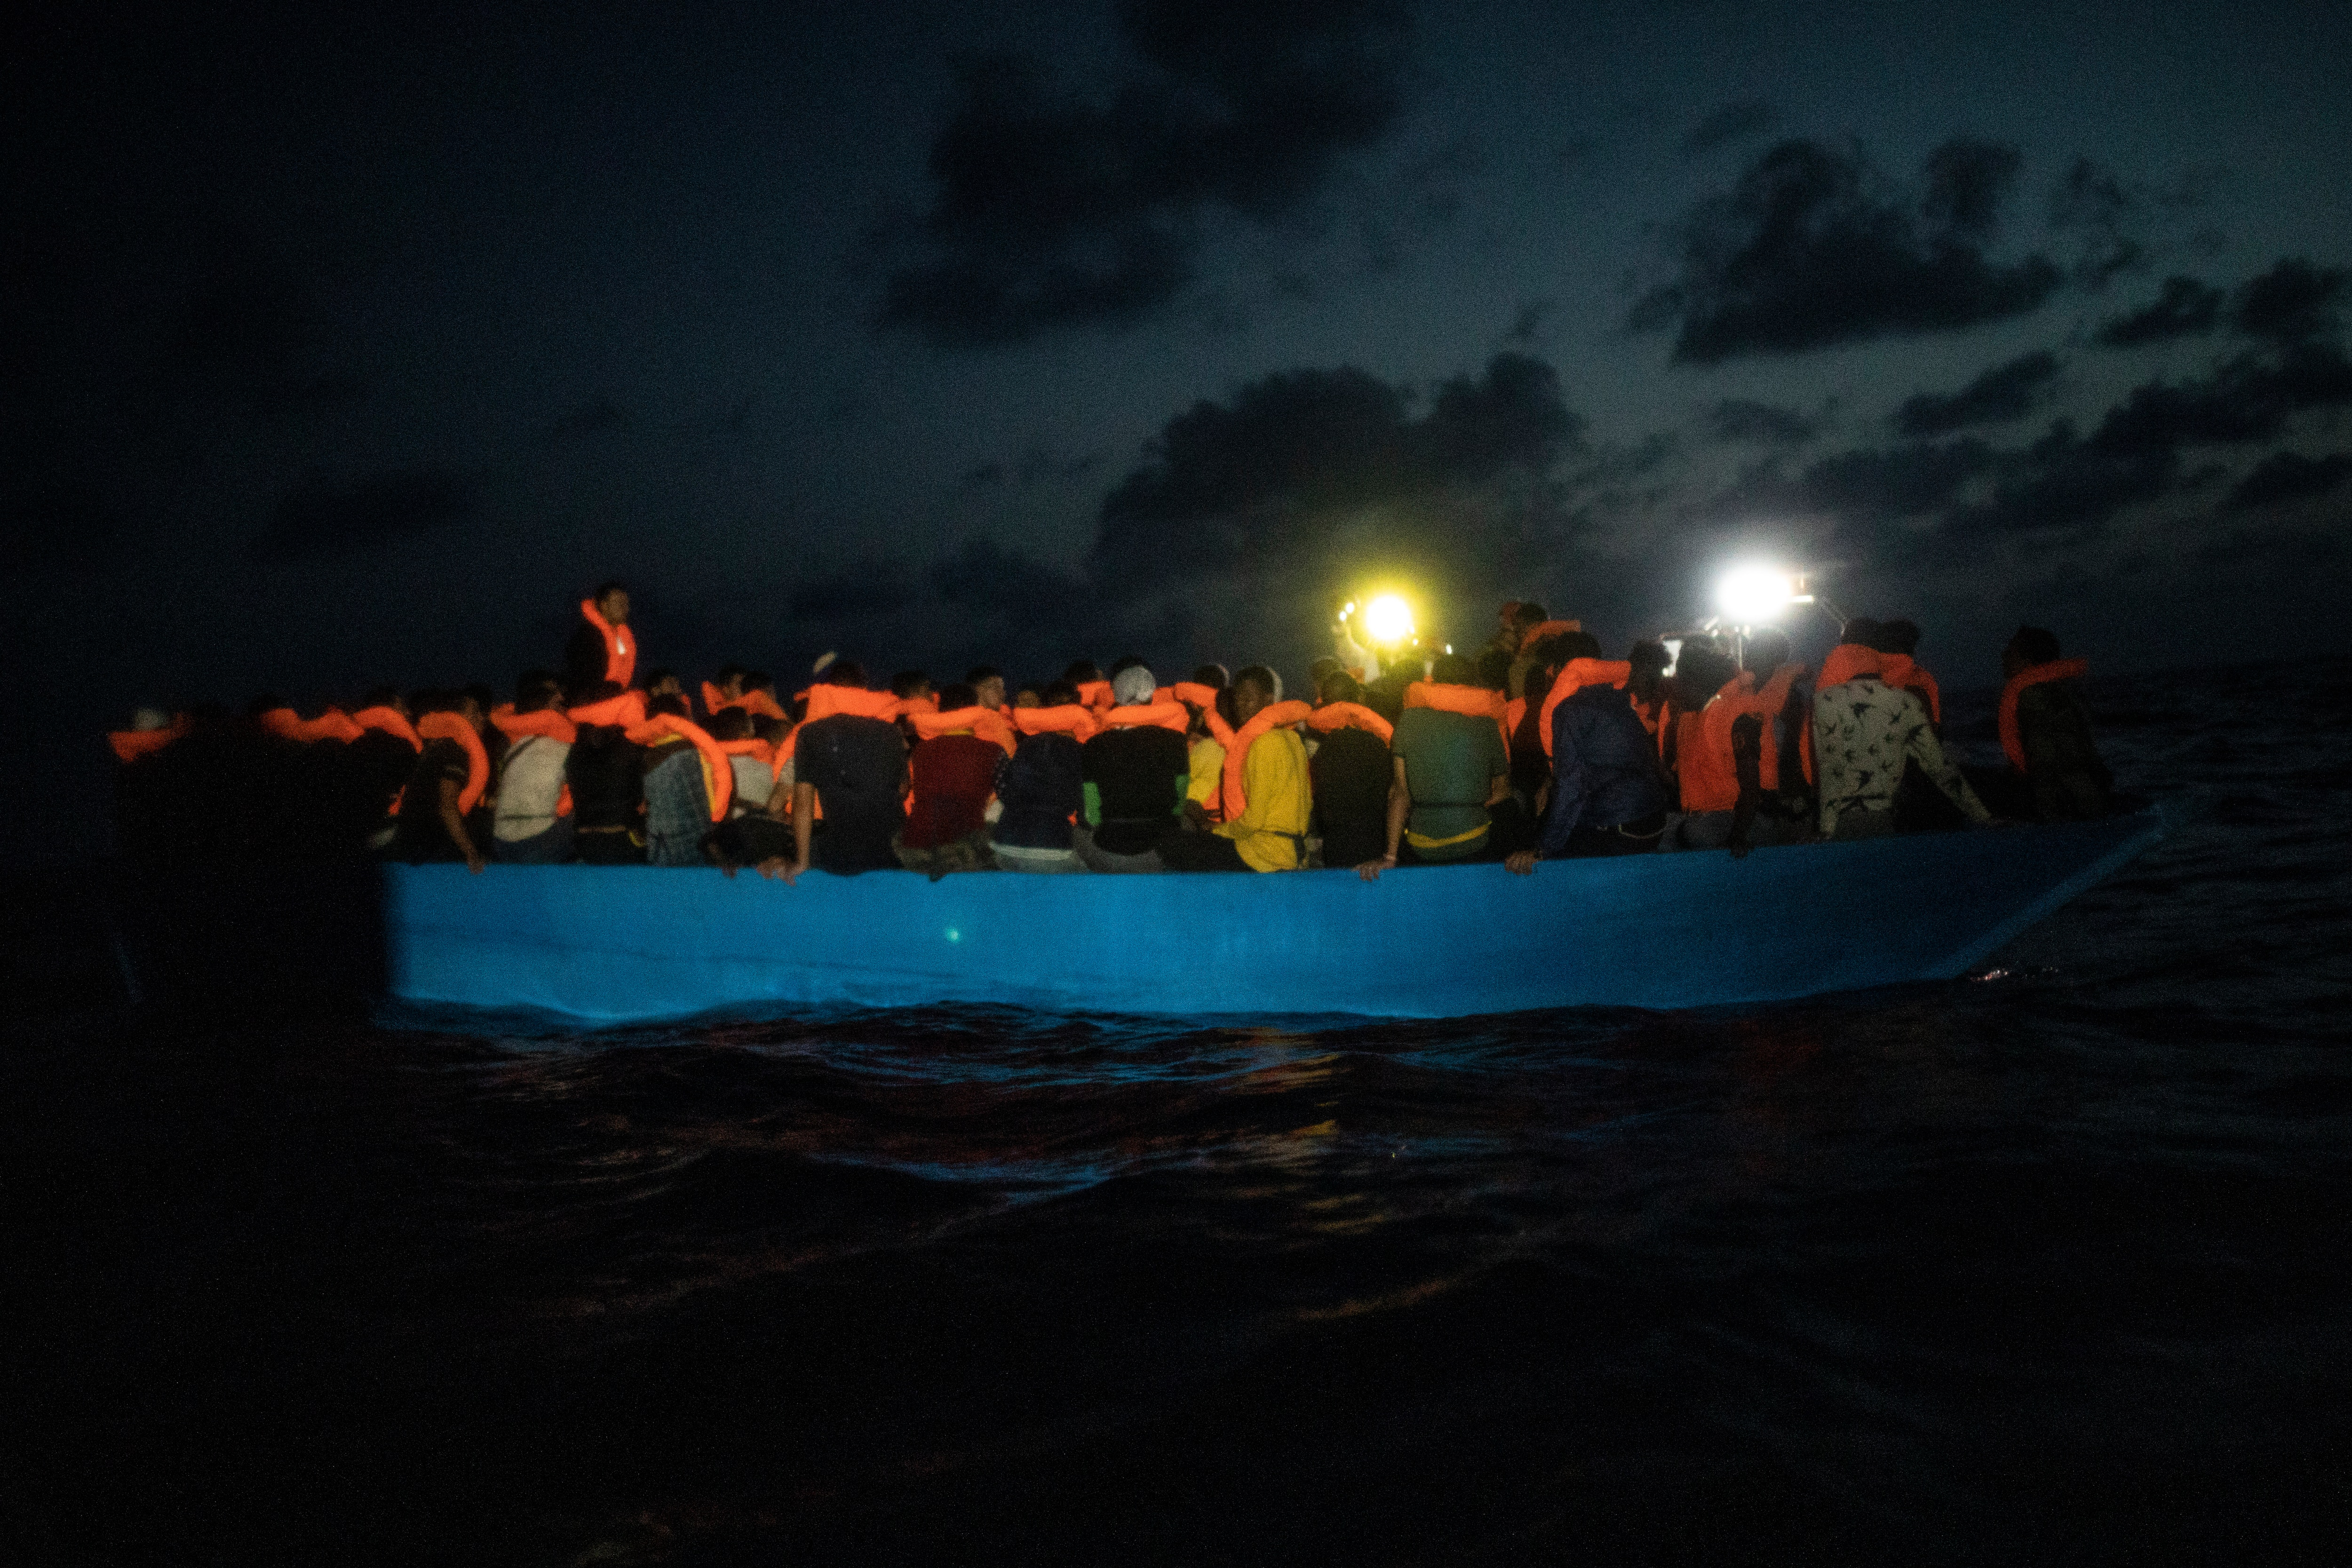 UN Appeals for Protection, Support for African Refugees Fleeing Toward Mediterranean - Voice of America